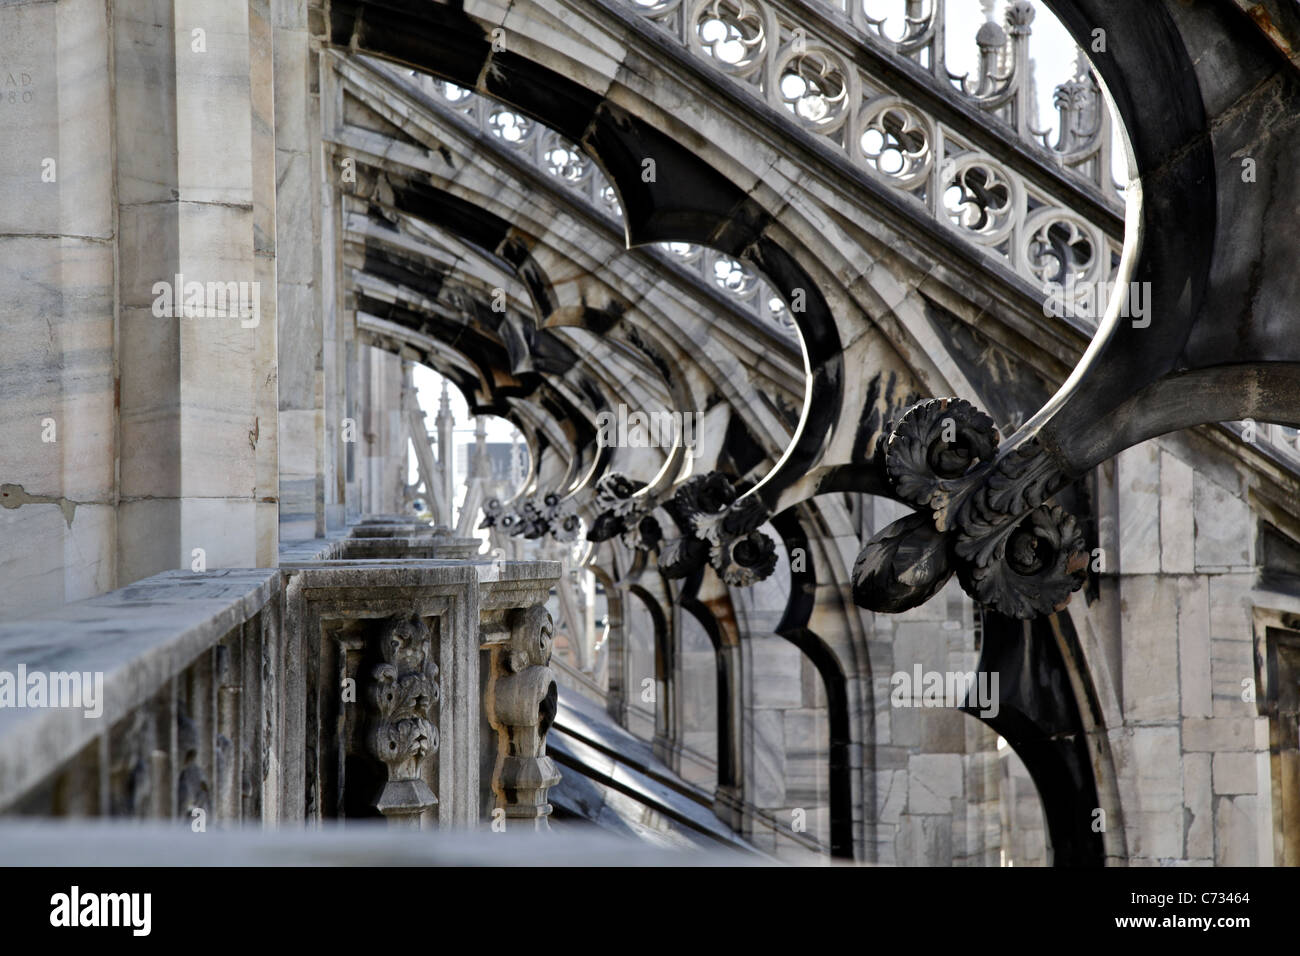 The roof of Milan Cathedral (Duomo di Milano) - Stock Image